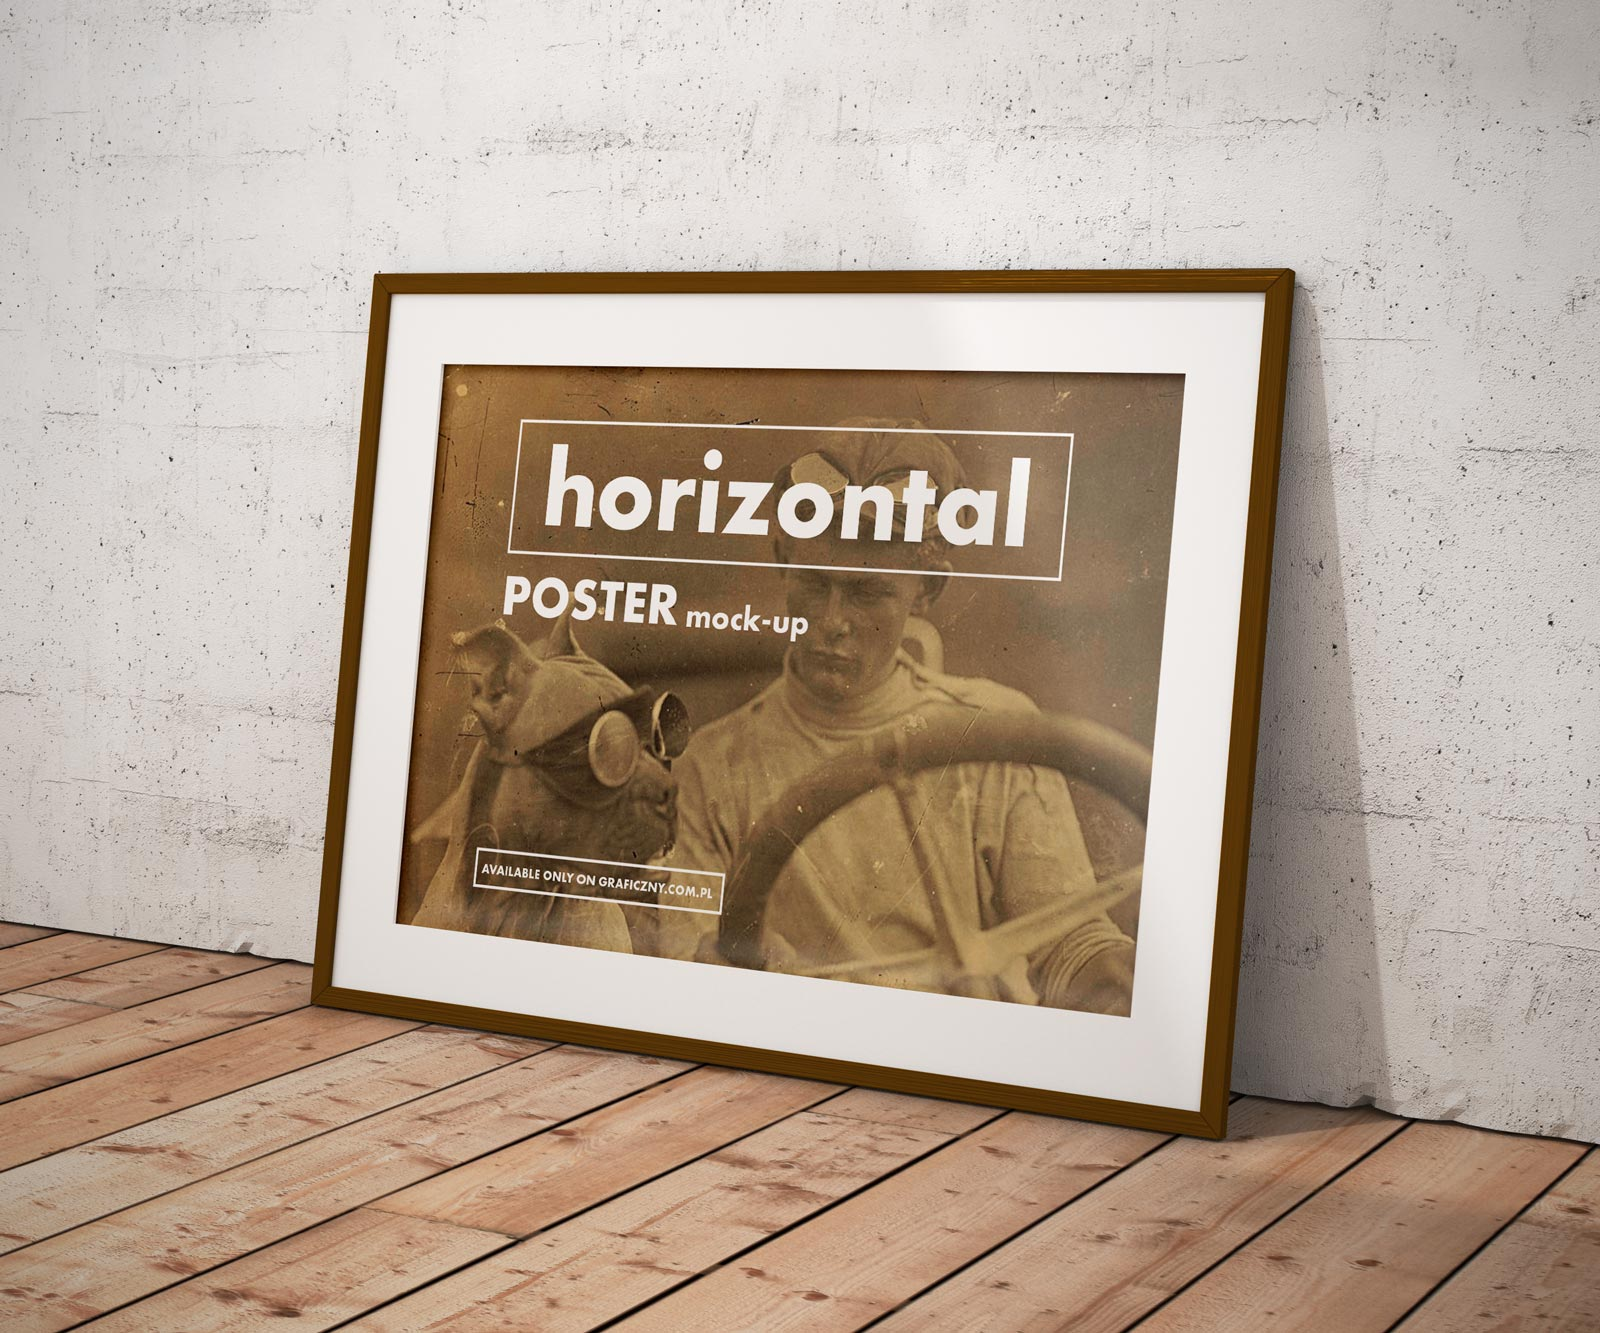 Free-Horizontal-Photo-Frame-Mockup-PSD-Files